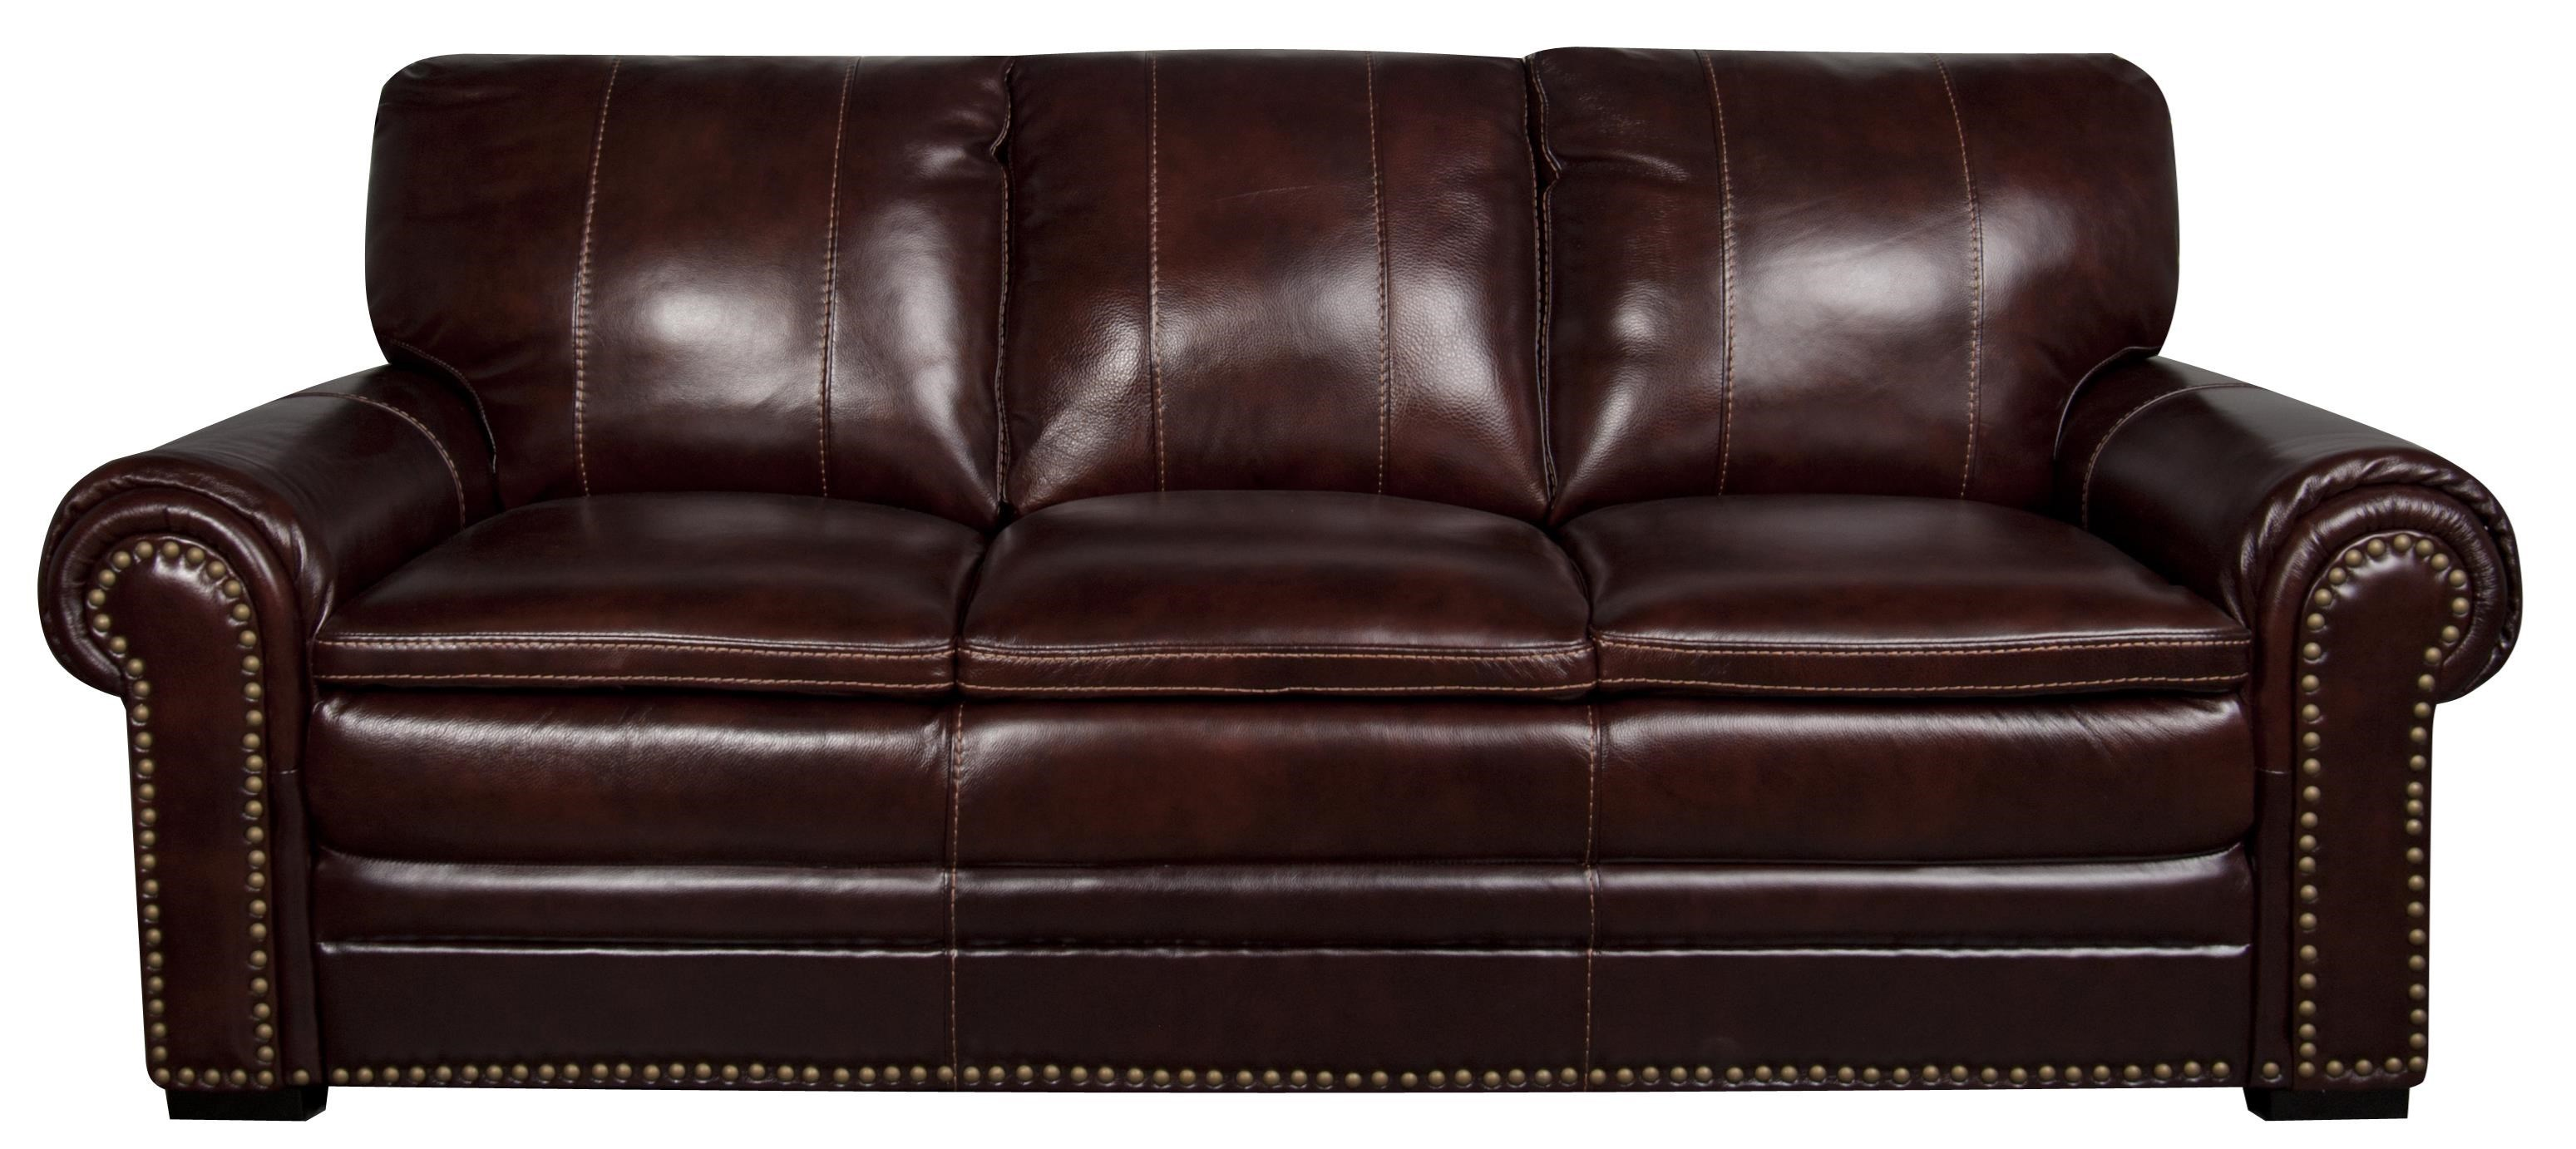 Morris Home ElwoodElwood Leather Match Sofa ...